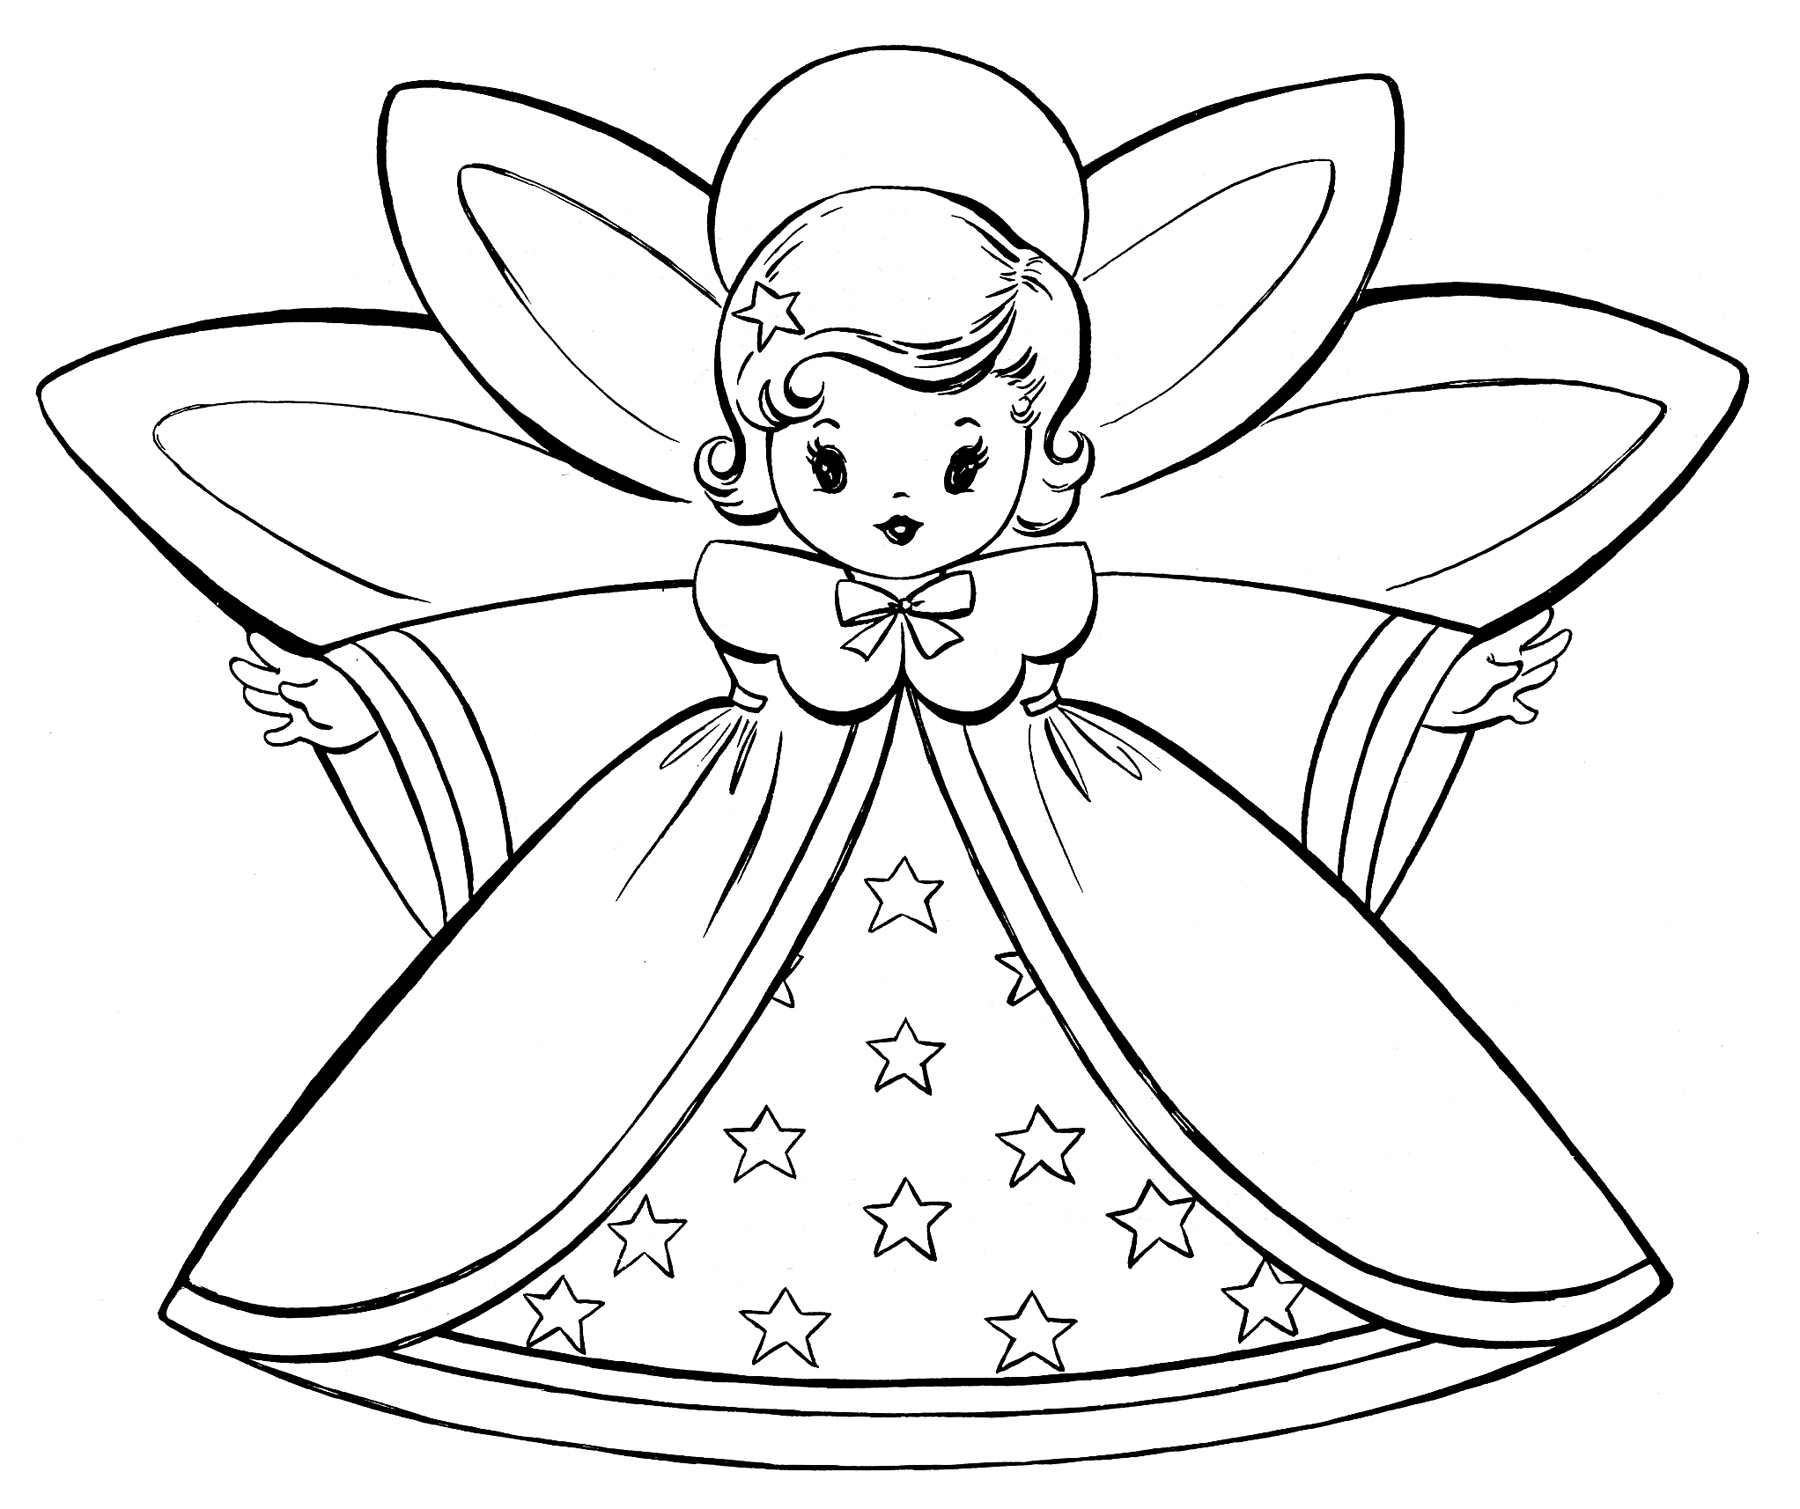 coloring pictures christmas printable christmas colouring pages the organised housewife christmas coloring pictures